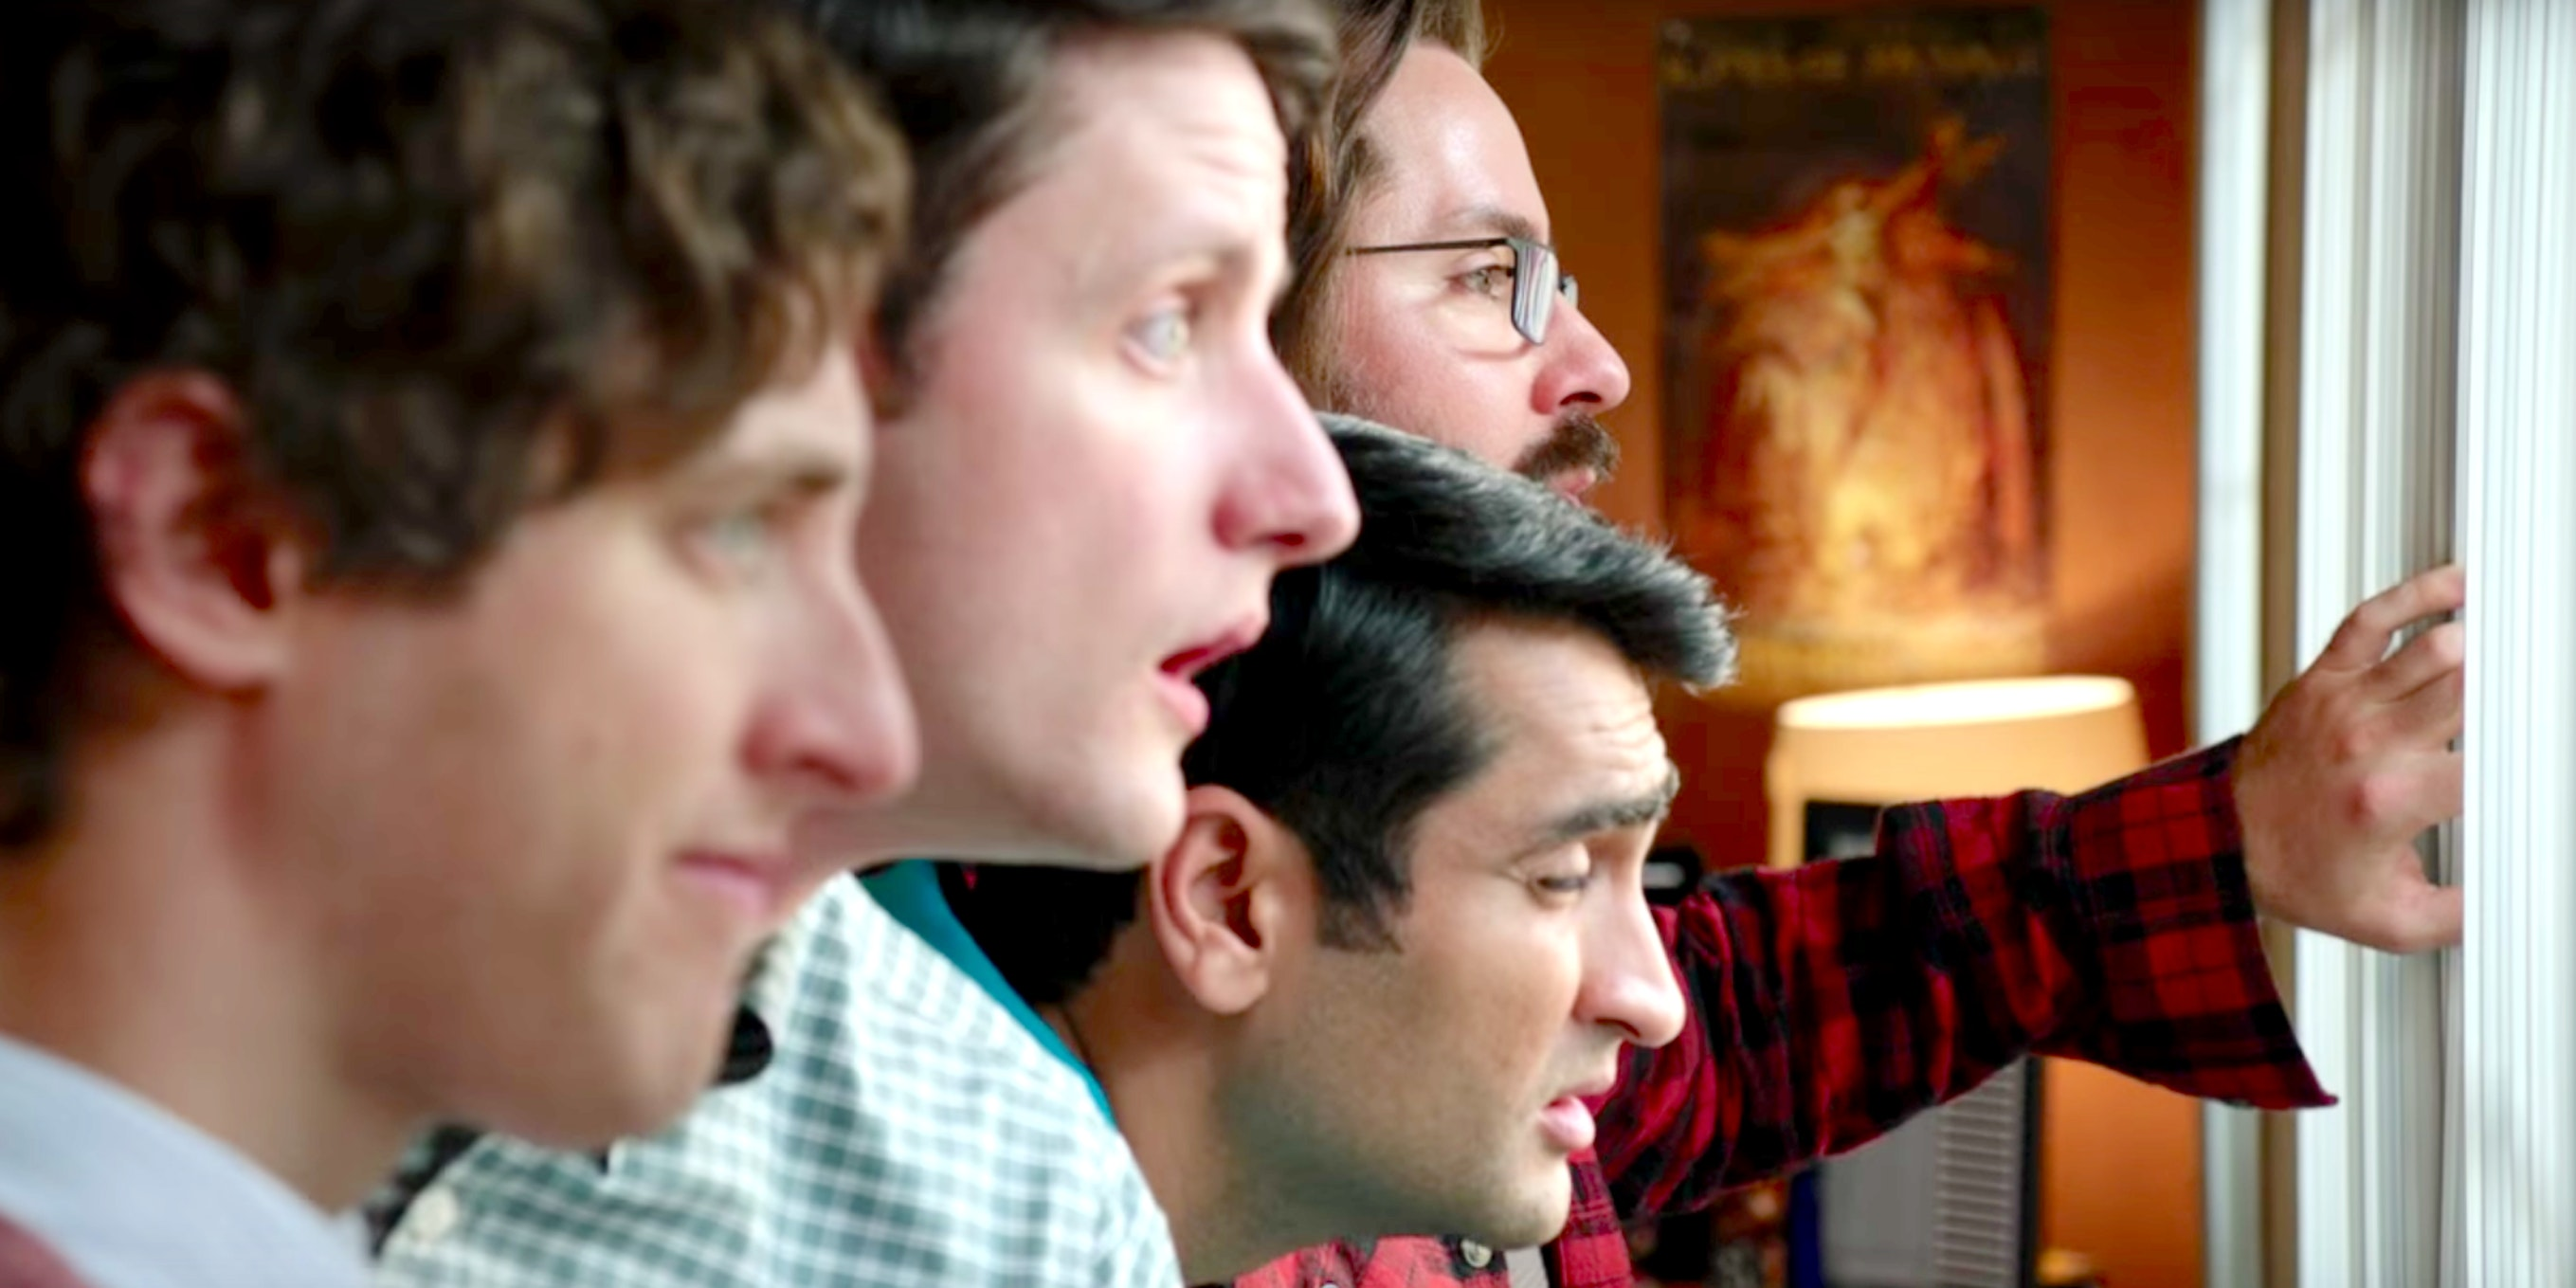 'Silicon Valley' Season 4 trailer